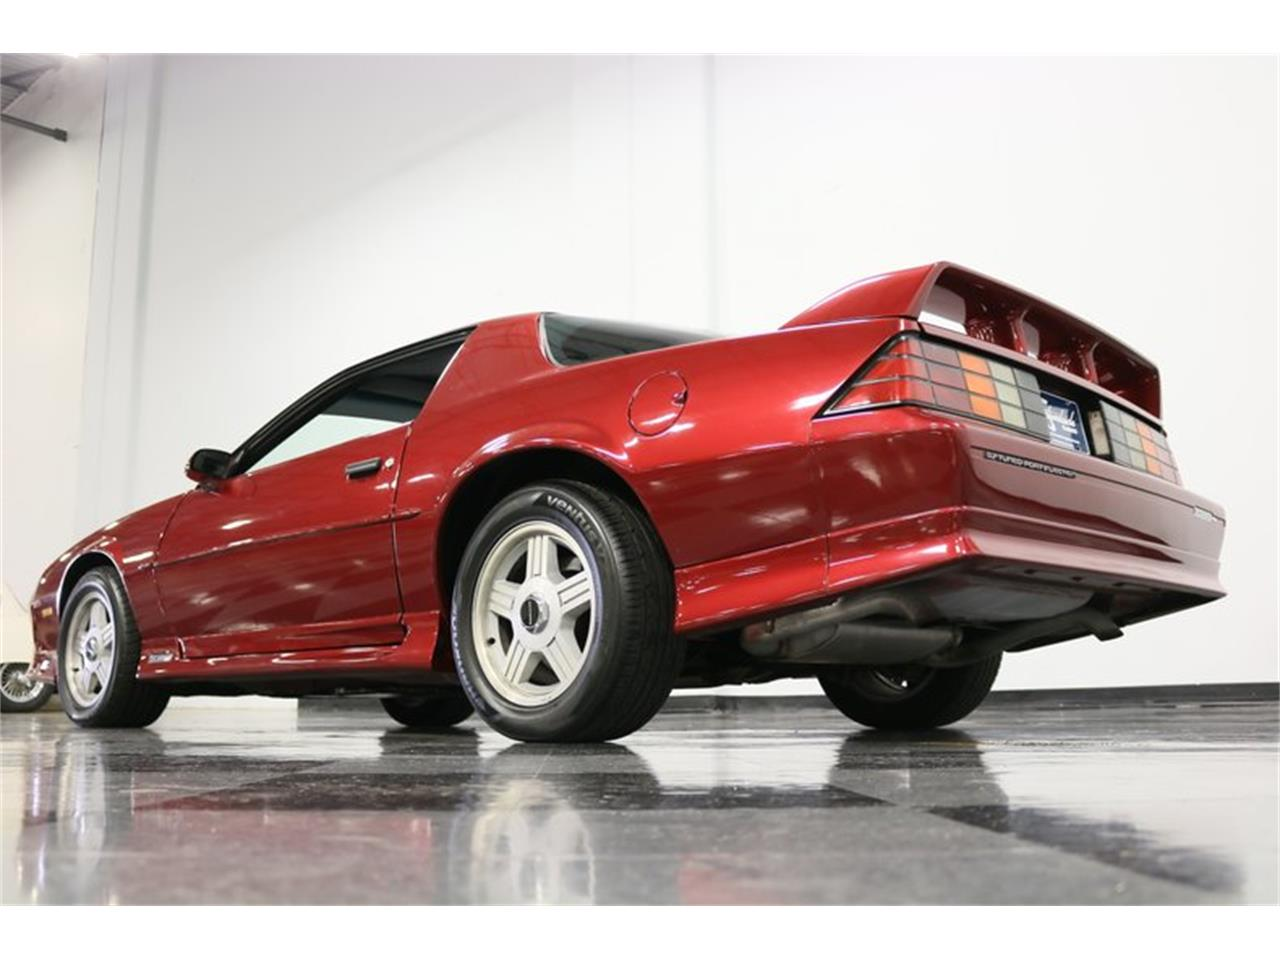 Large Picture of '91 Camaro located in Ft Worth Texas - $11,995.00 Offered by Streetside Classics - Dallas / Fort Worth - PBLJ